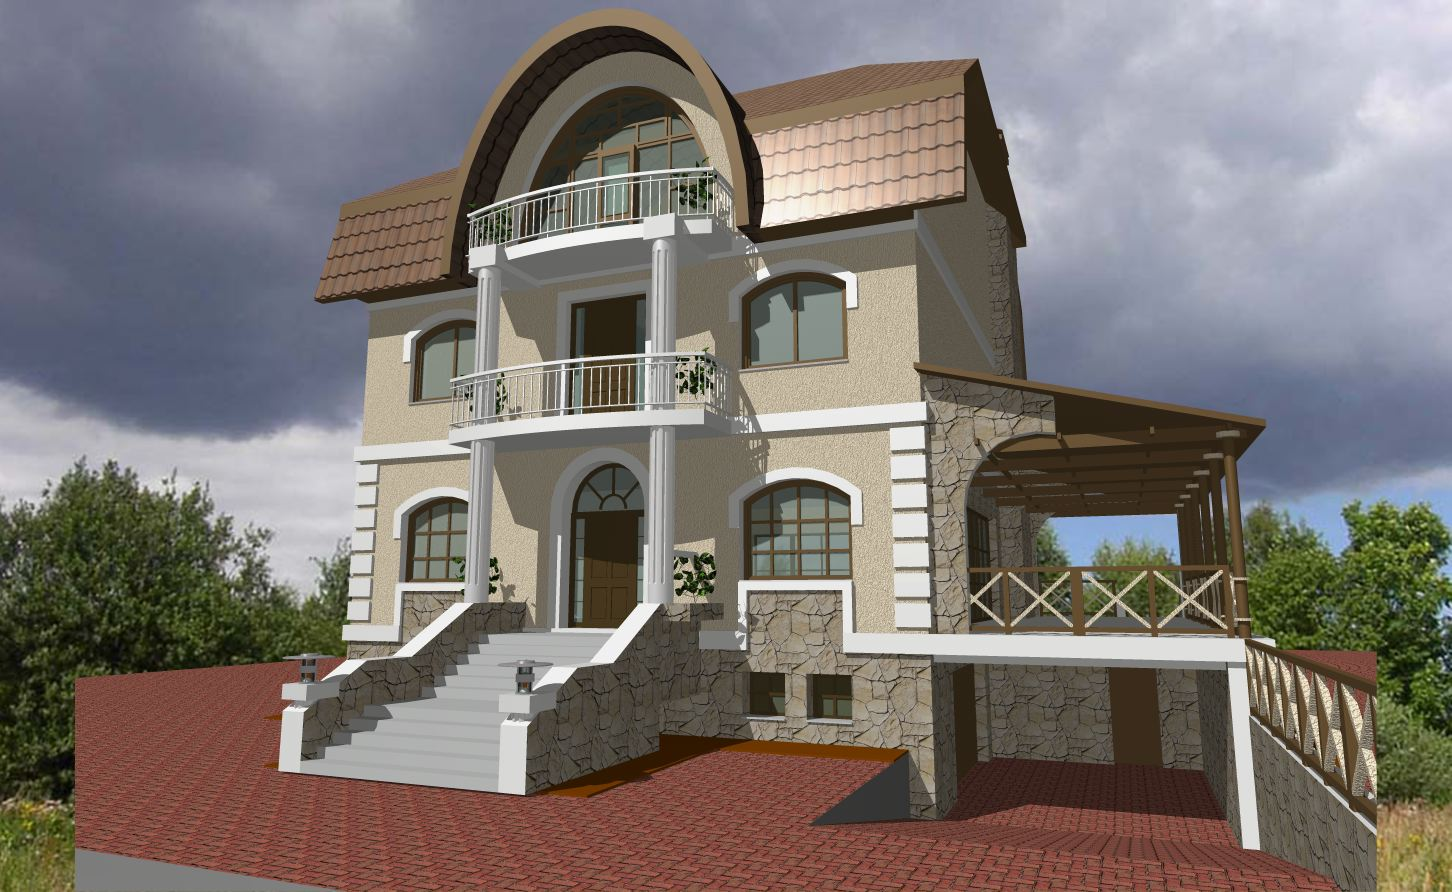 Foundation dezin decor exterior elevations view 39 s for Home designs 2015